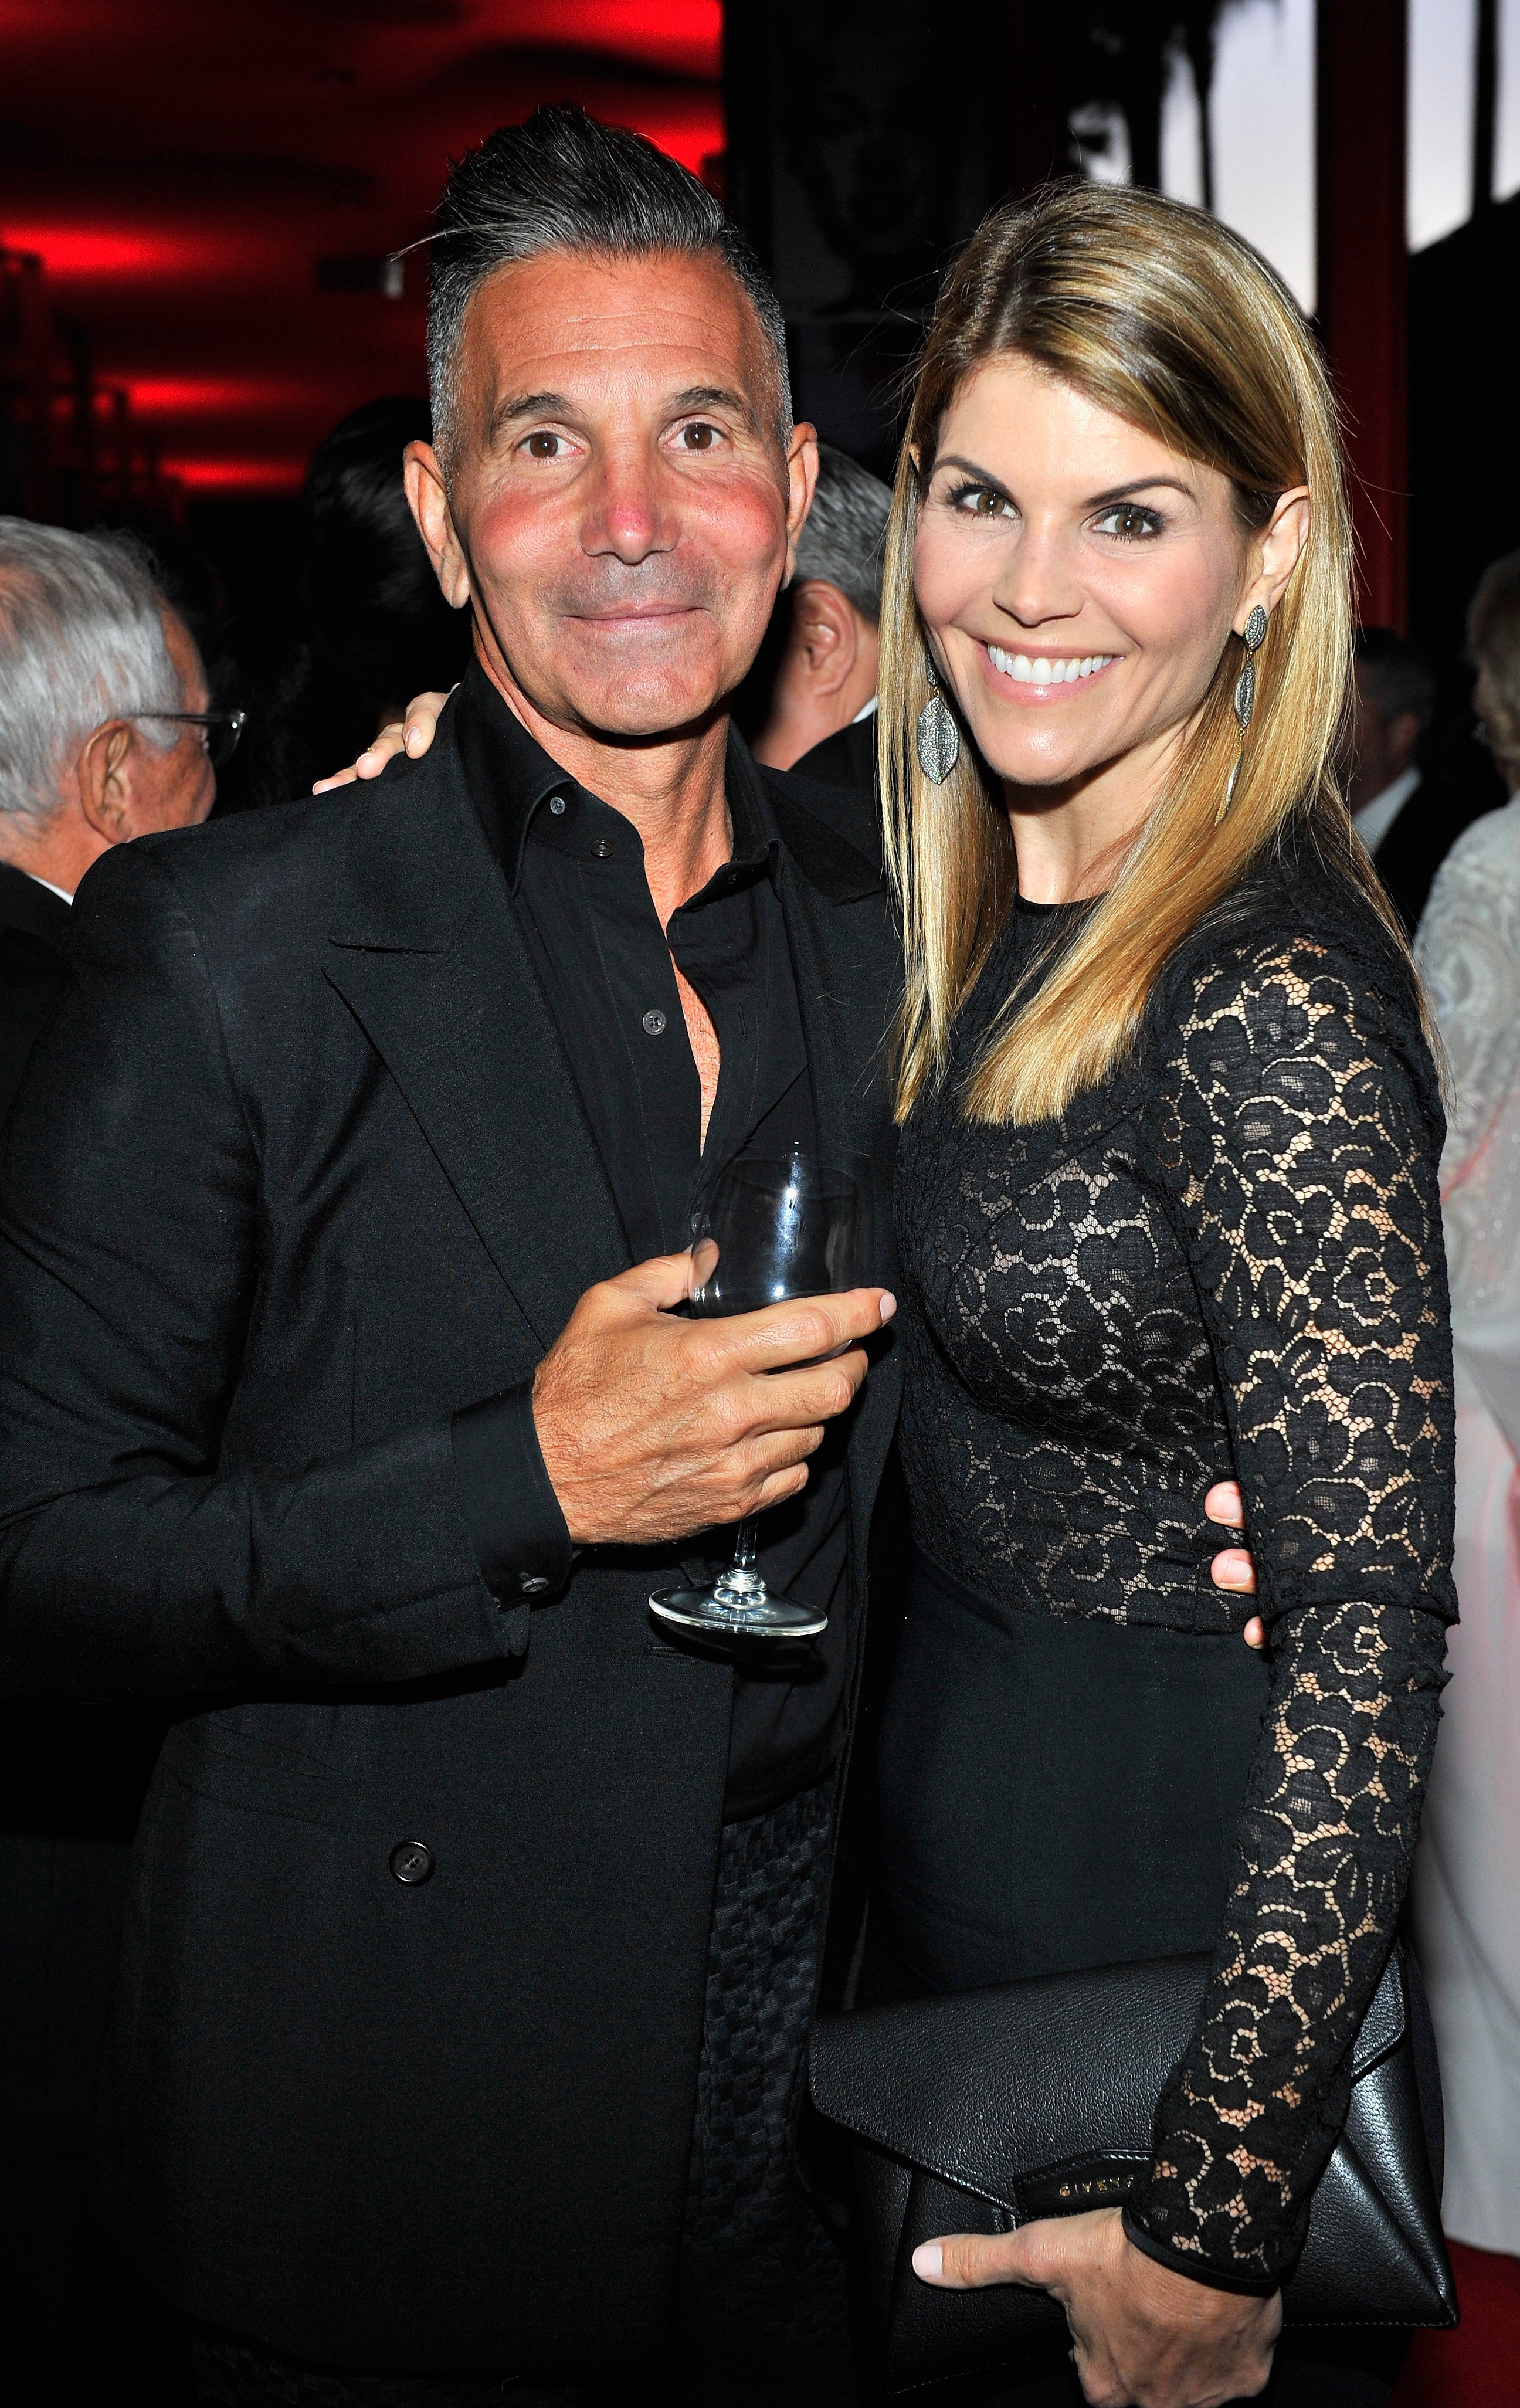 Mossimo Giannulli and his wife, Lori Loughlin attending an event in Los Angeles in April, 2015. | Photo: Getty Images.